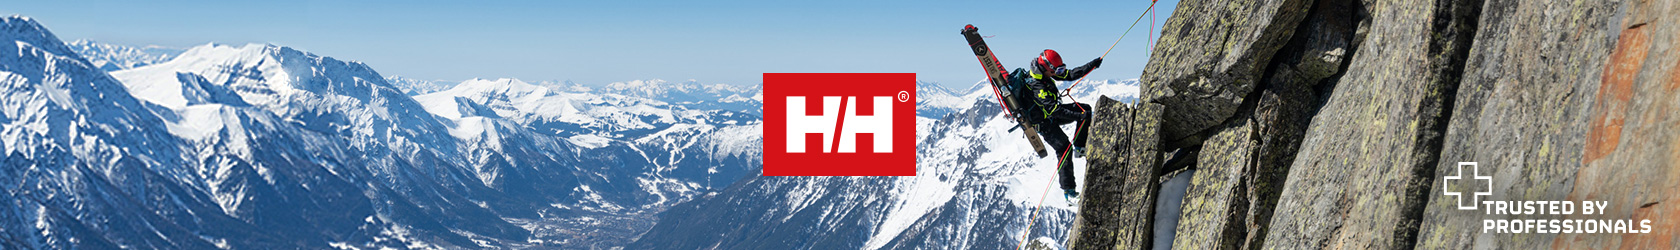 A man wearing Helly Hansen gear is climbing a rock somewhere in snowy mountains, there is a Helly Hansen logo in the centre of the image.